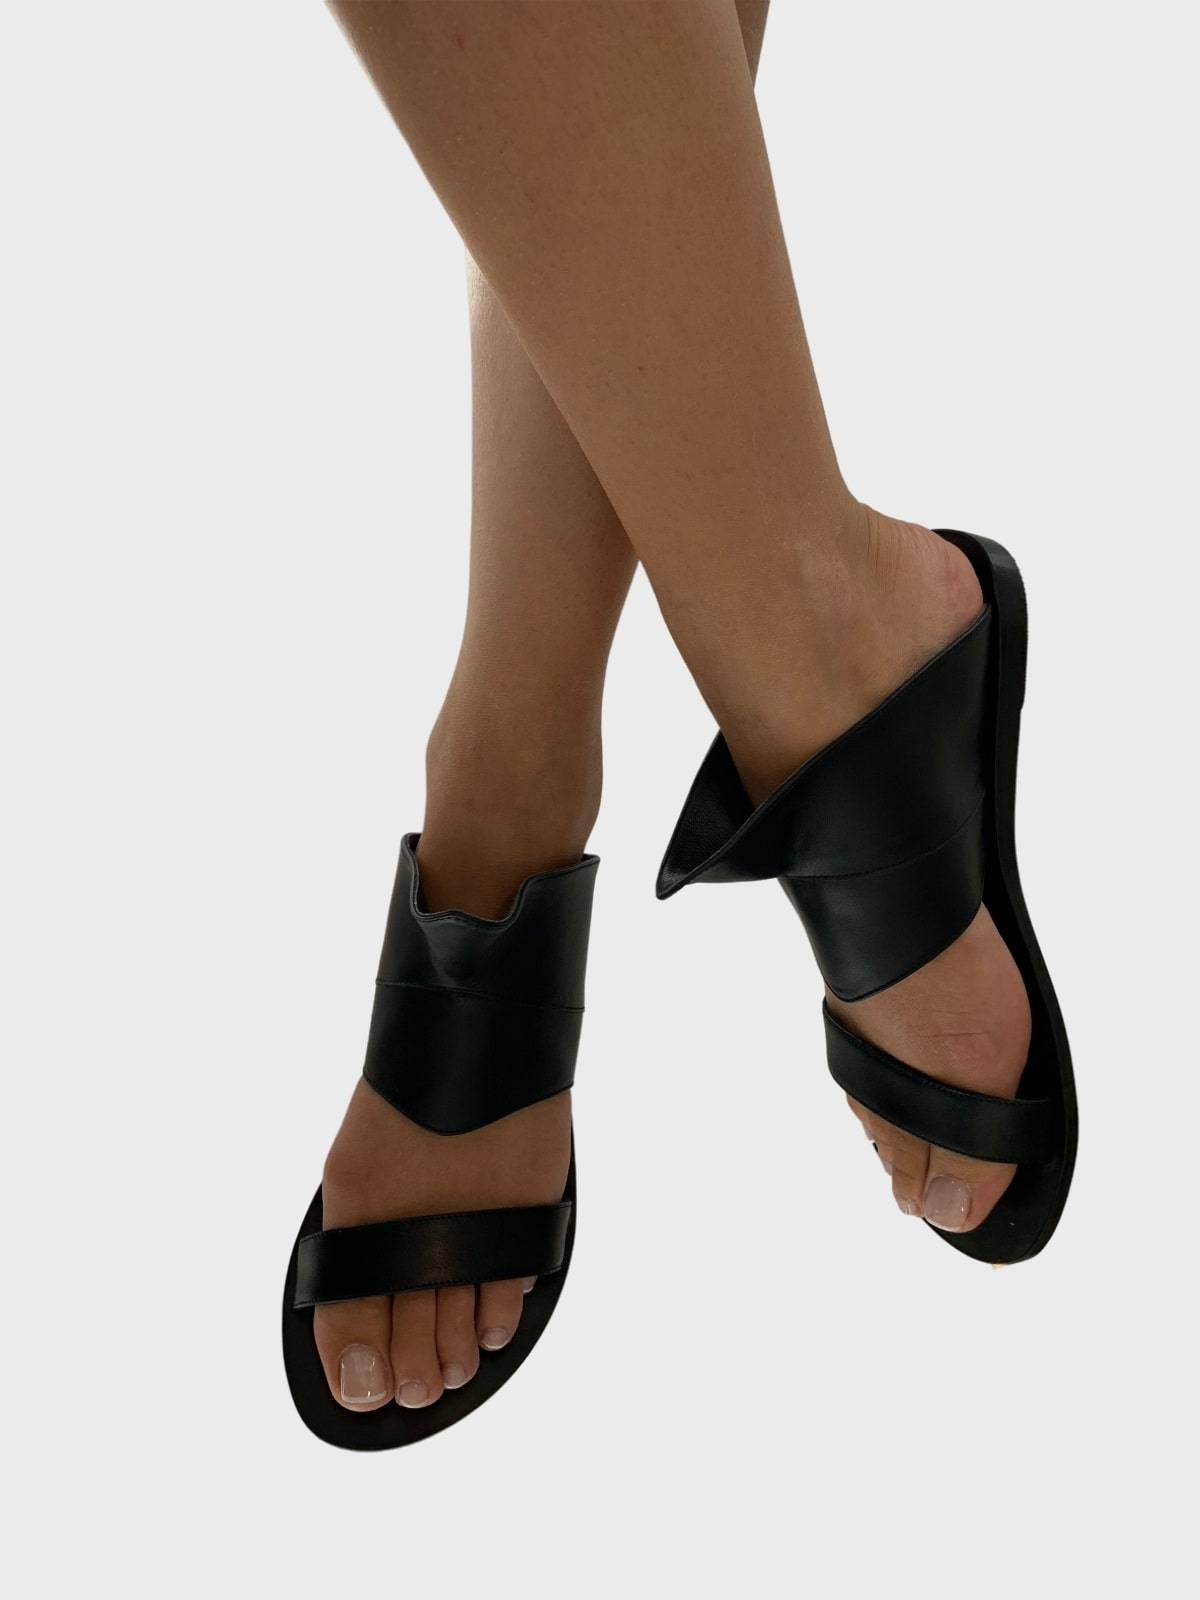 I love sandals | Ankle cuff sandals